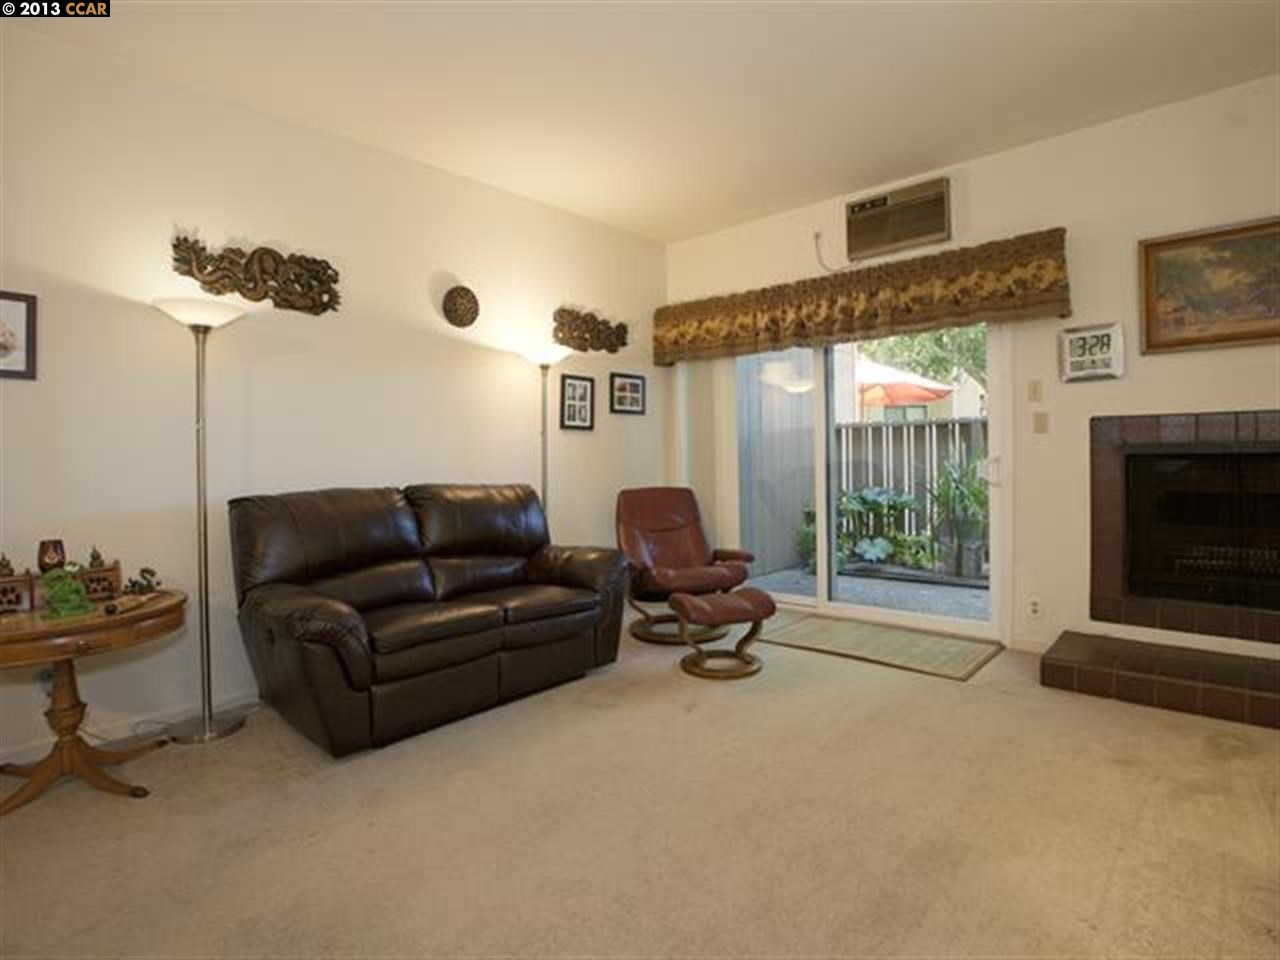 Additional photo for property listing at 8985 ALCOSTA BLVD  San Ramon, カリフォルニア 94583 アメリカ合衆国